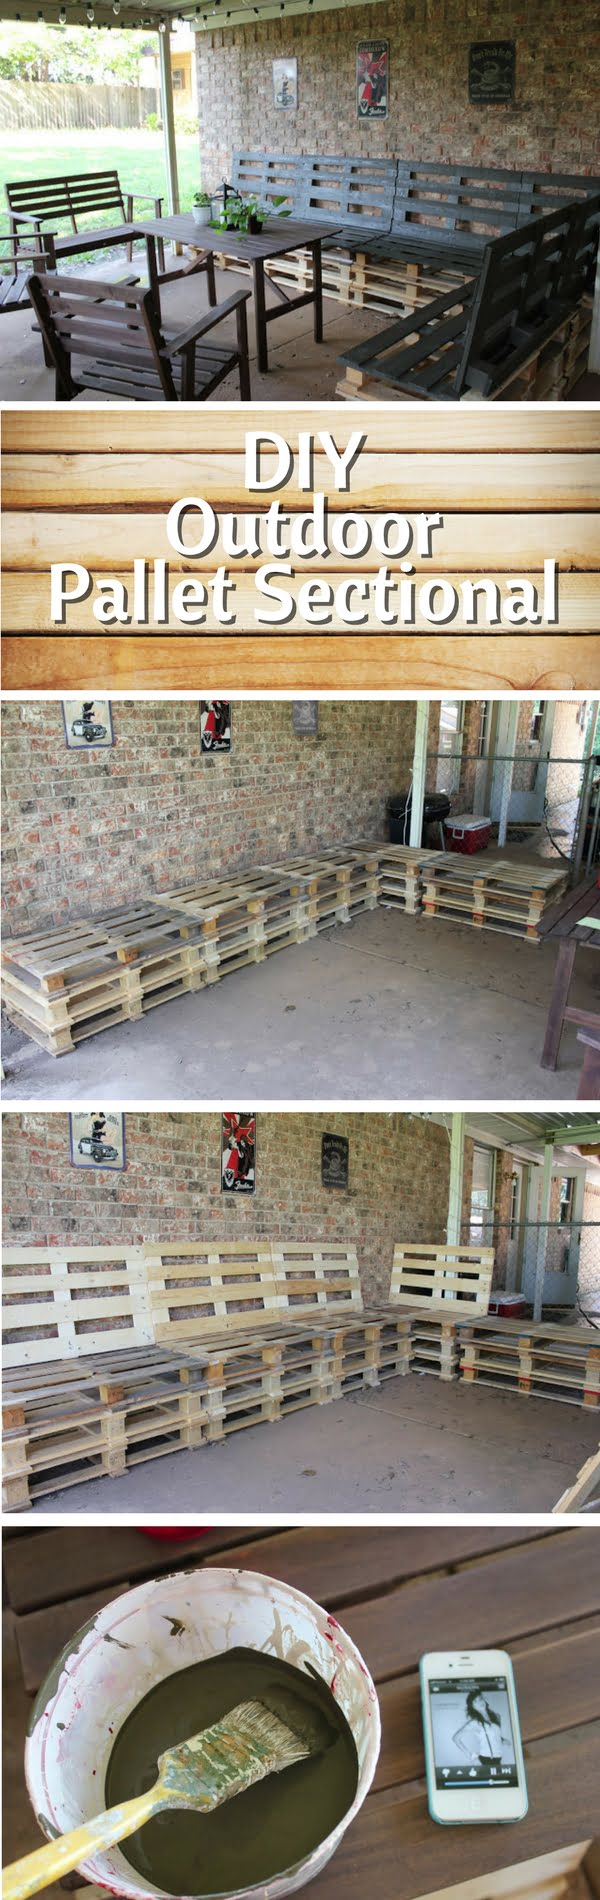 Check out how to build DIY outdoor furniture from pallet wood